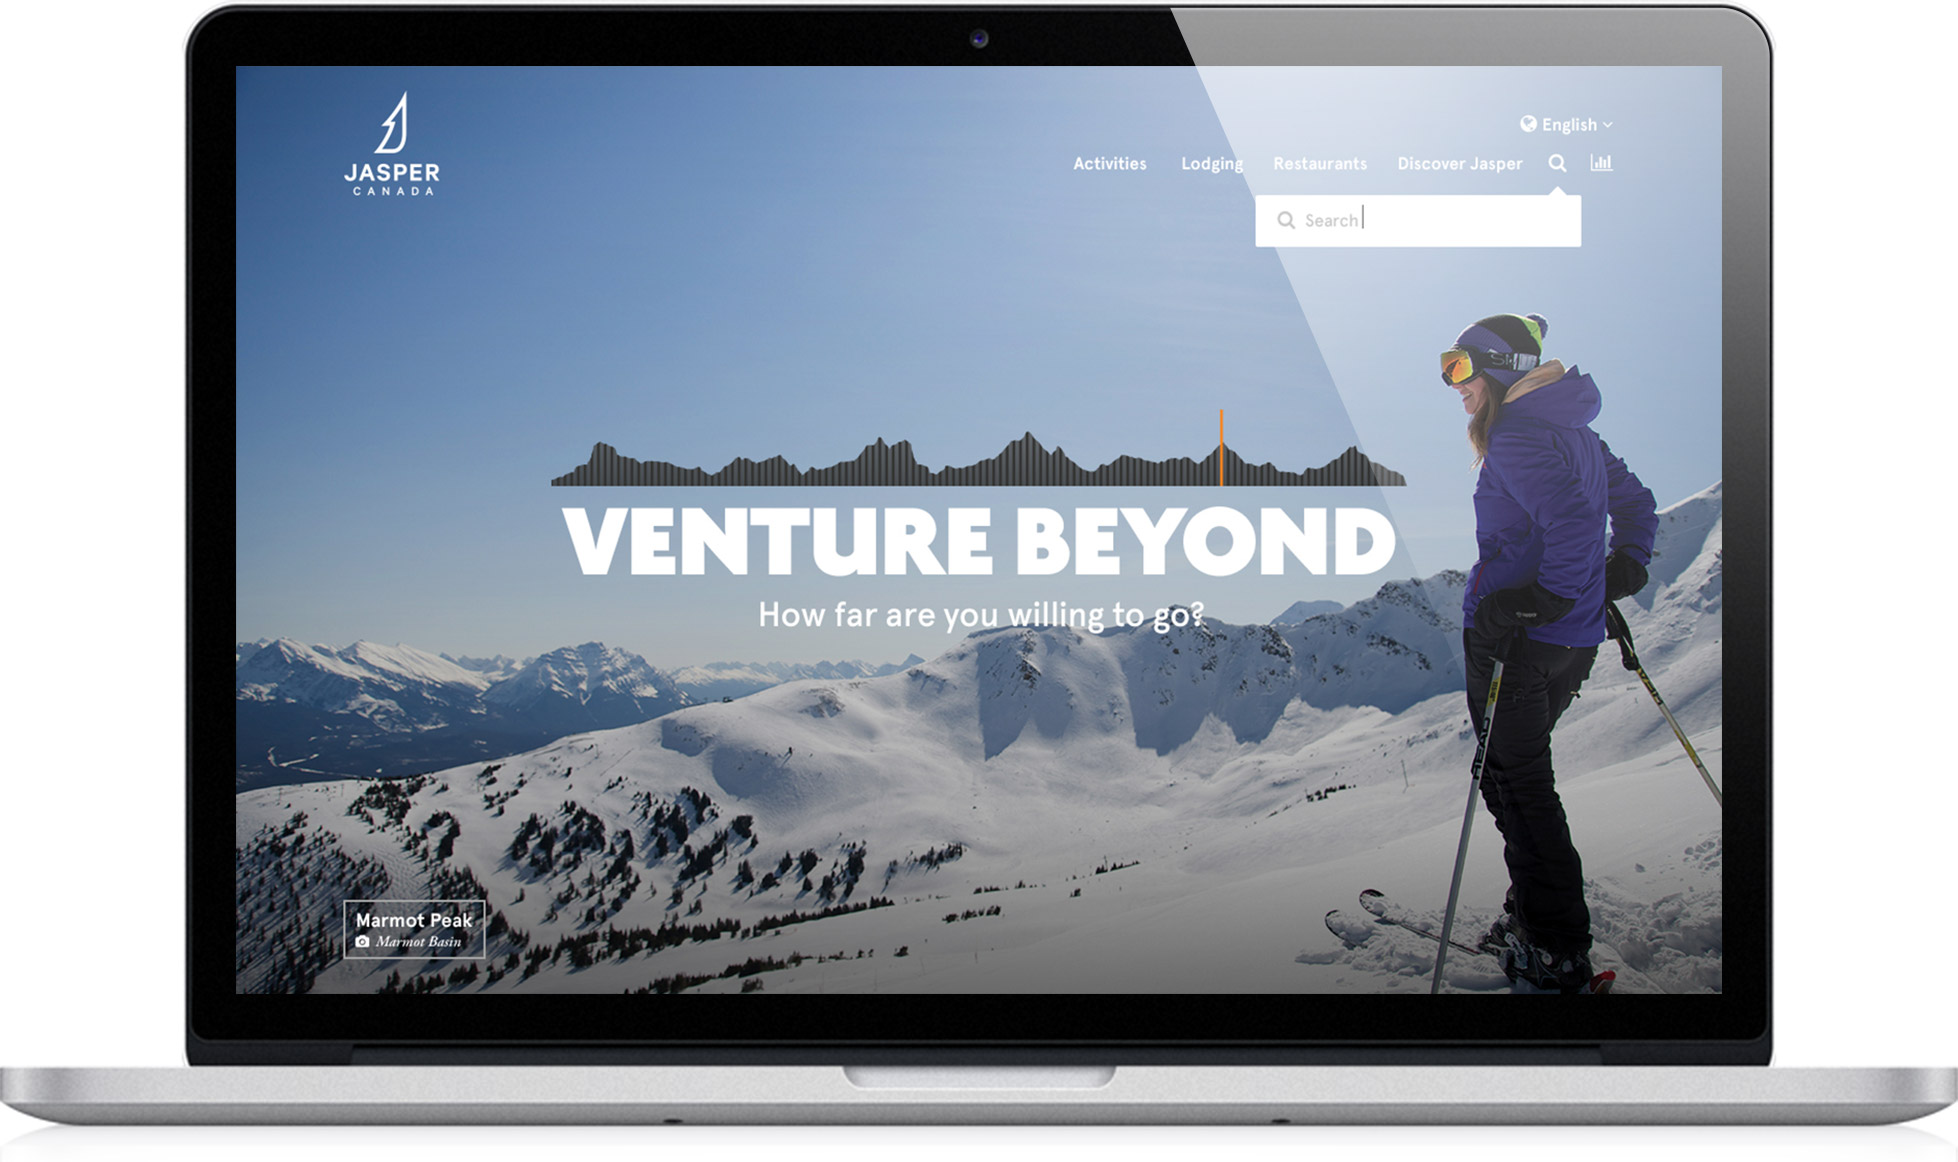 Jasper Travel – Jonathan Wood Design